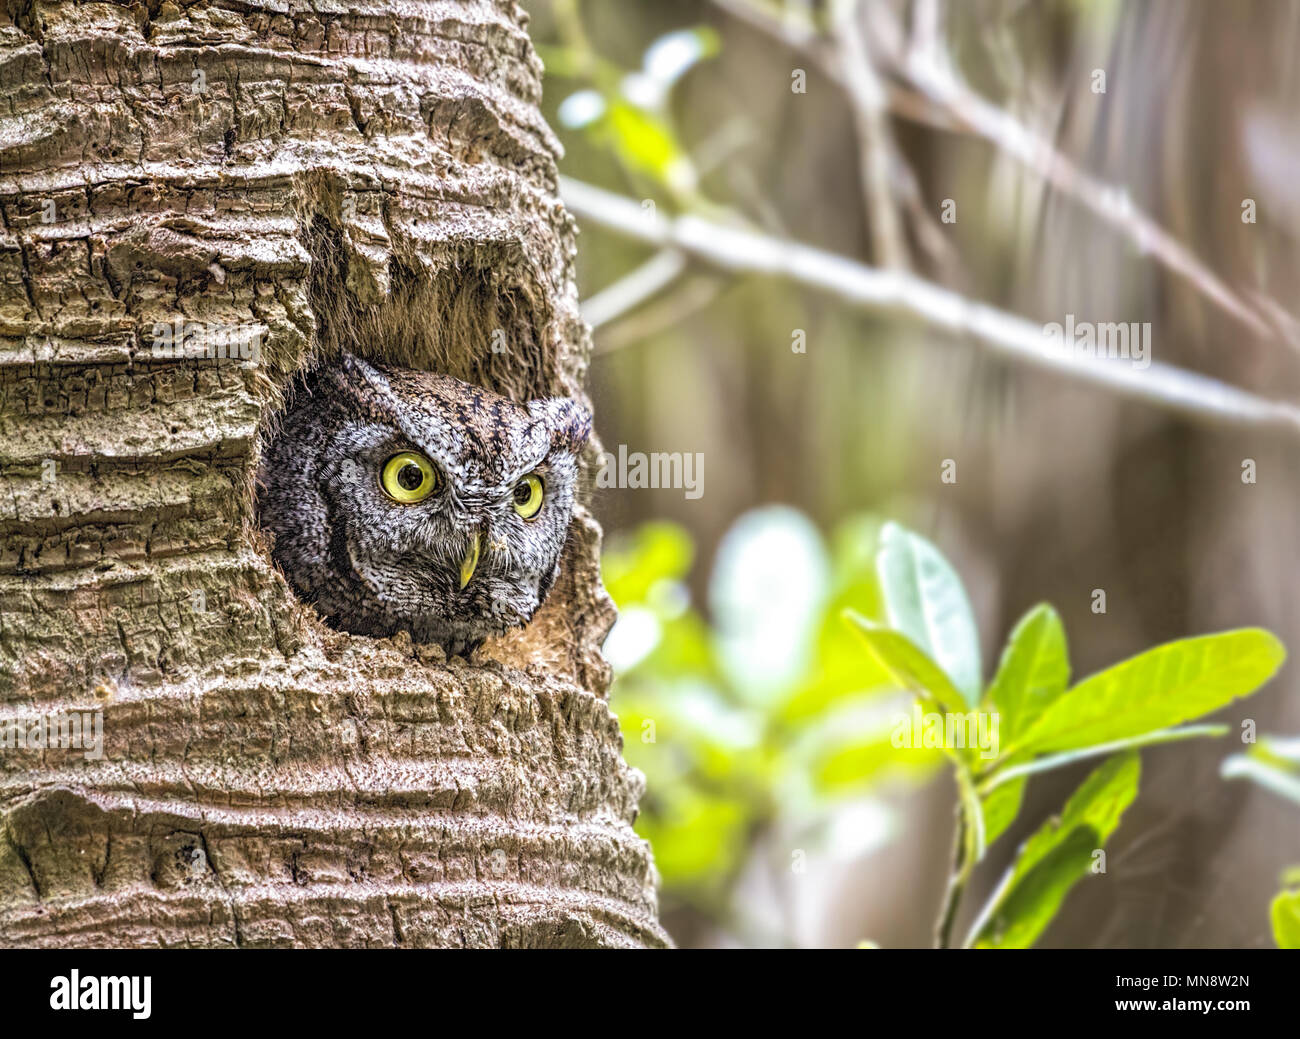 A very well- camouflaged little Eastern Screech Owl ( Megascops asio ) peering out  from its nest in a palm tree in tropical, southern Floridash, USA. Stock Photo